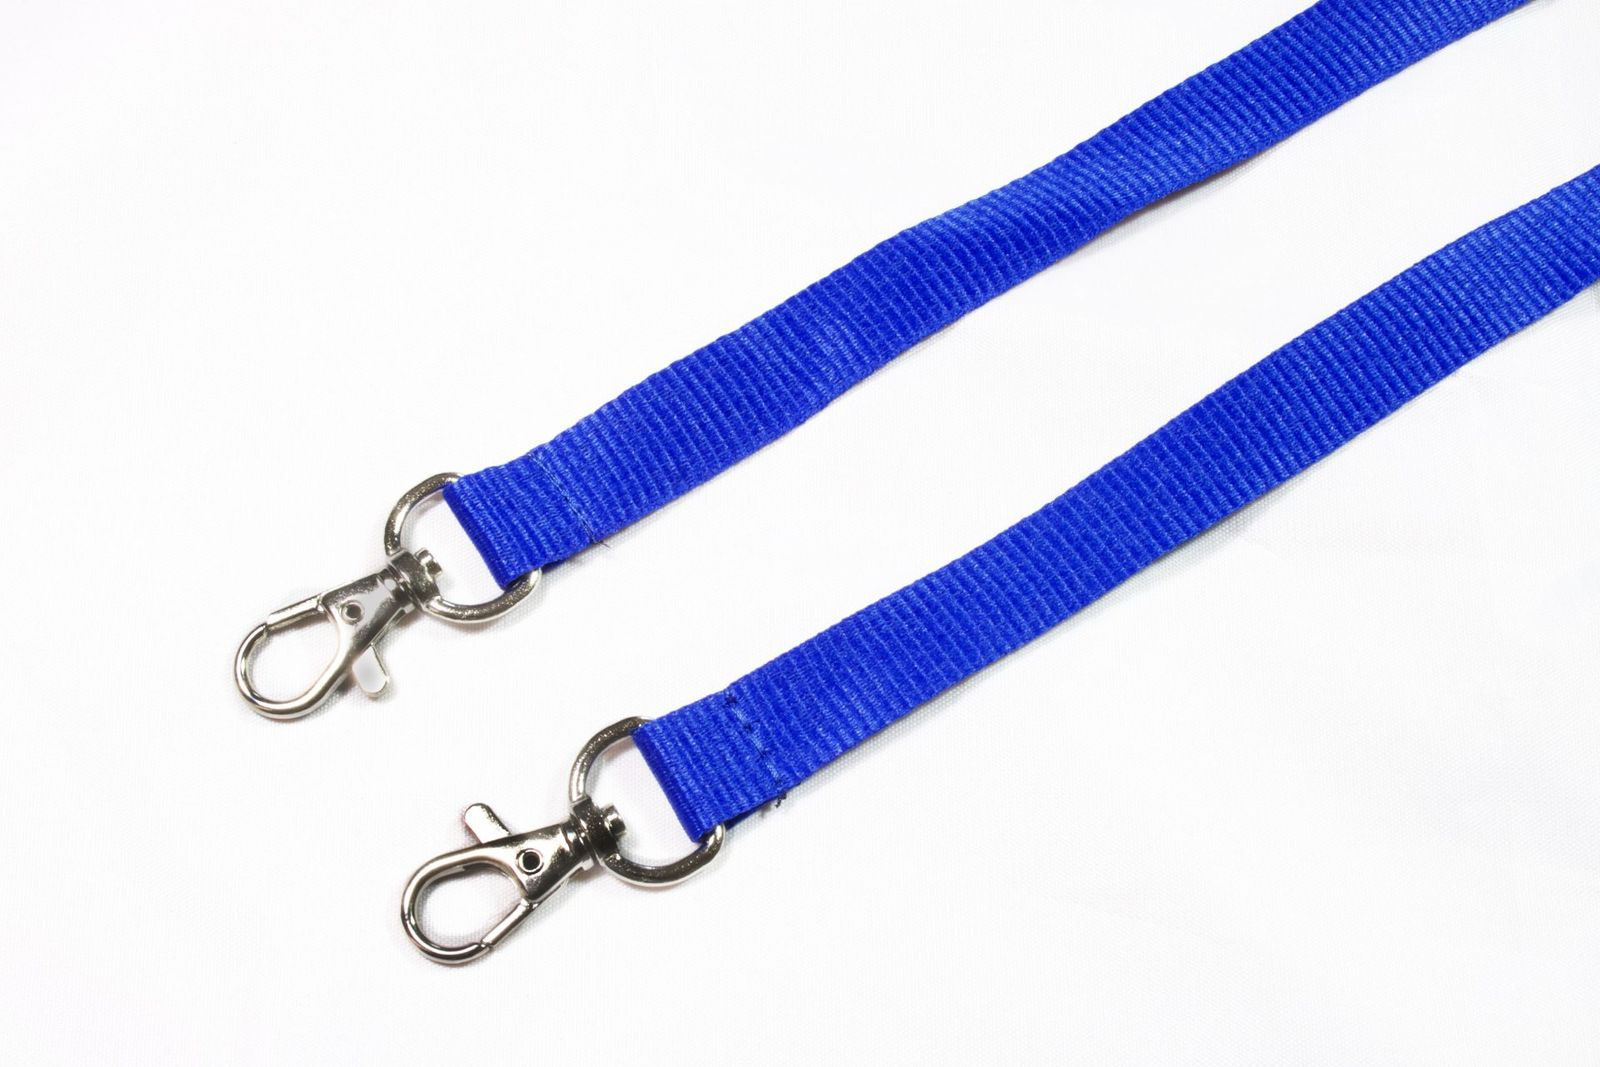 Buy Plain Blue Double Ended Lanyards on Lanyards Direct Today!